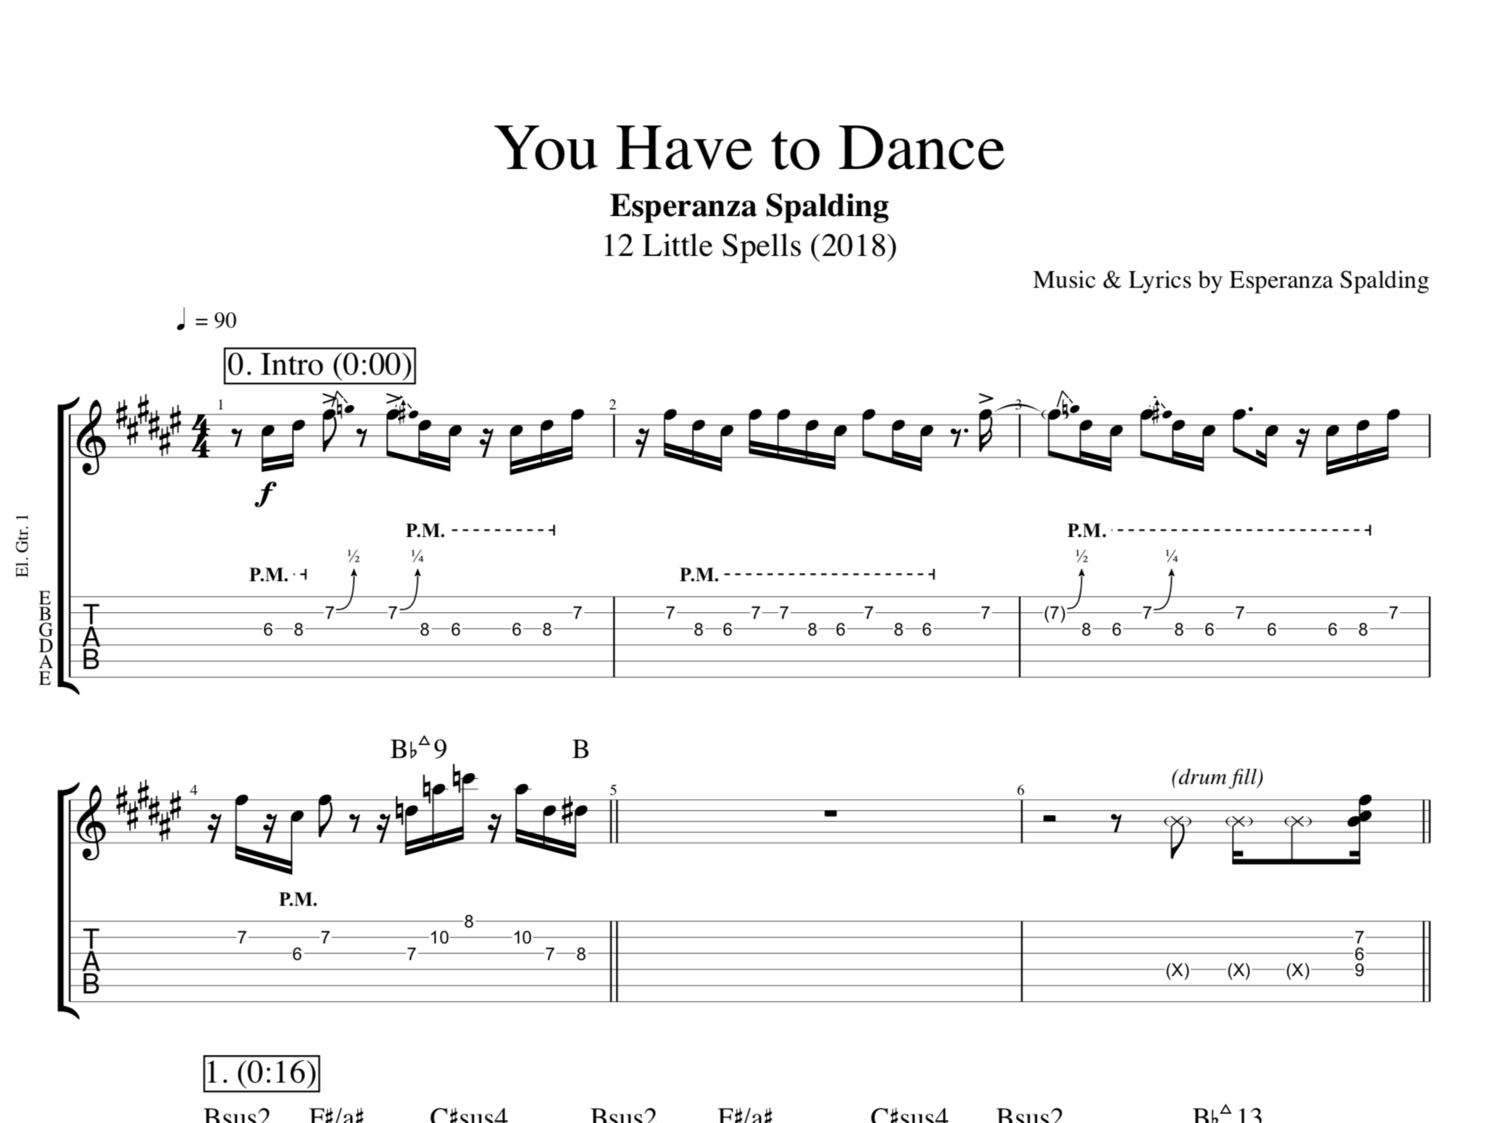 You Have To Dance By Esperanza Spalding Guitars Bass Piano Voice Tabs Sheet Music Chords Lyrics Play Like The Greats Com